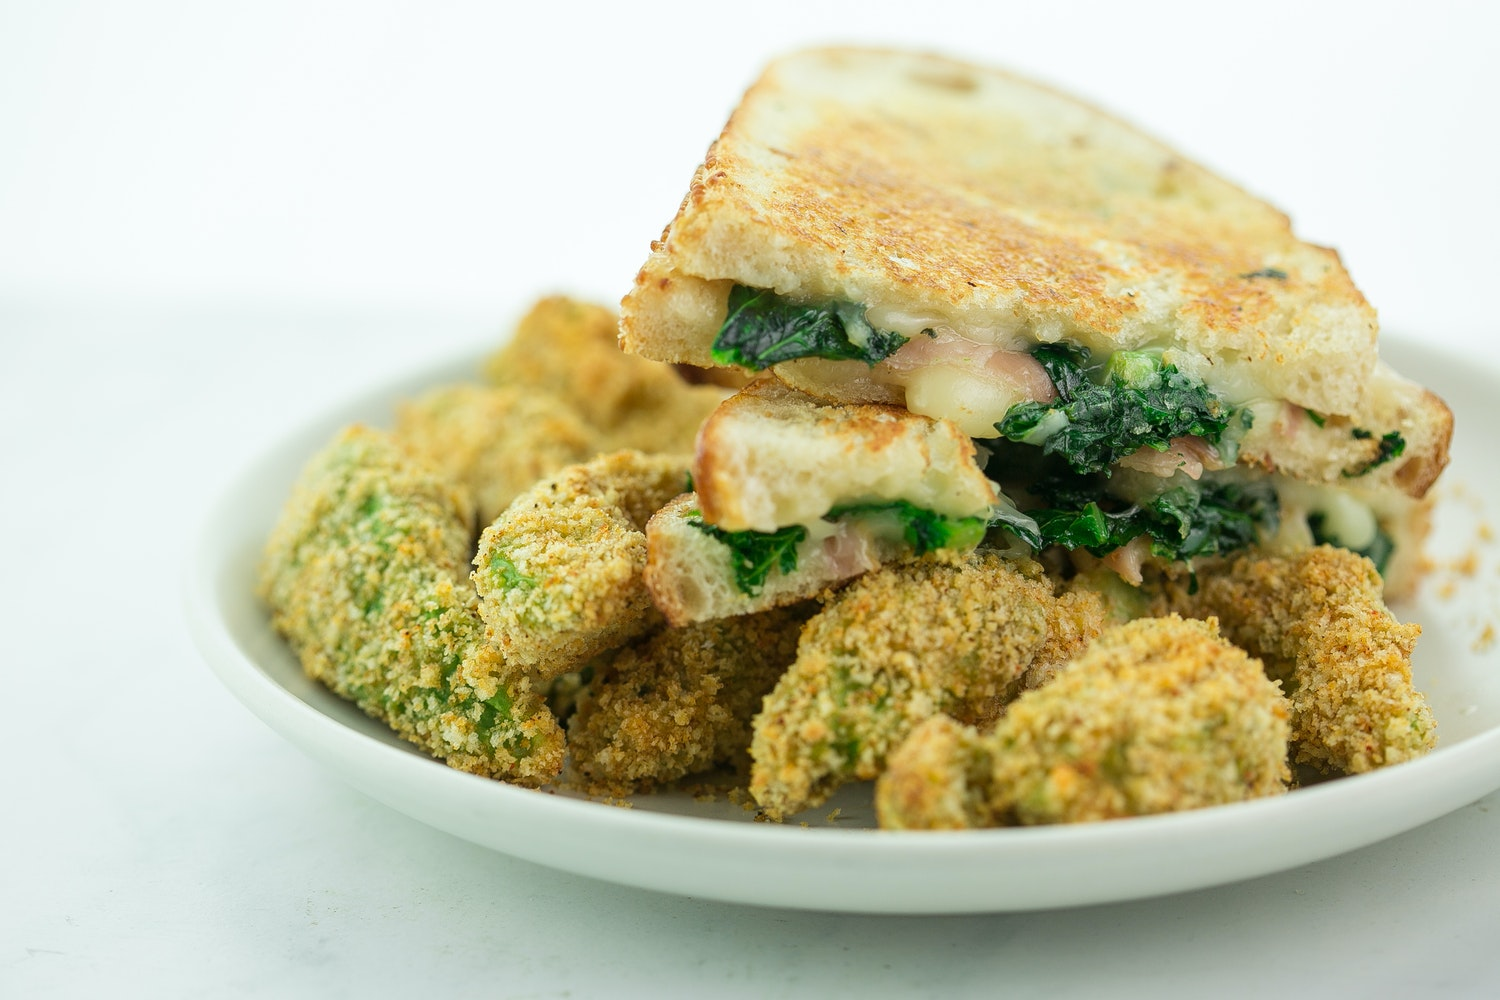 20140214 grilled cheese kale nm 5.jpg?ixlib=rails 2.1